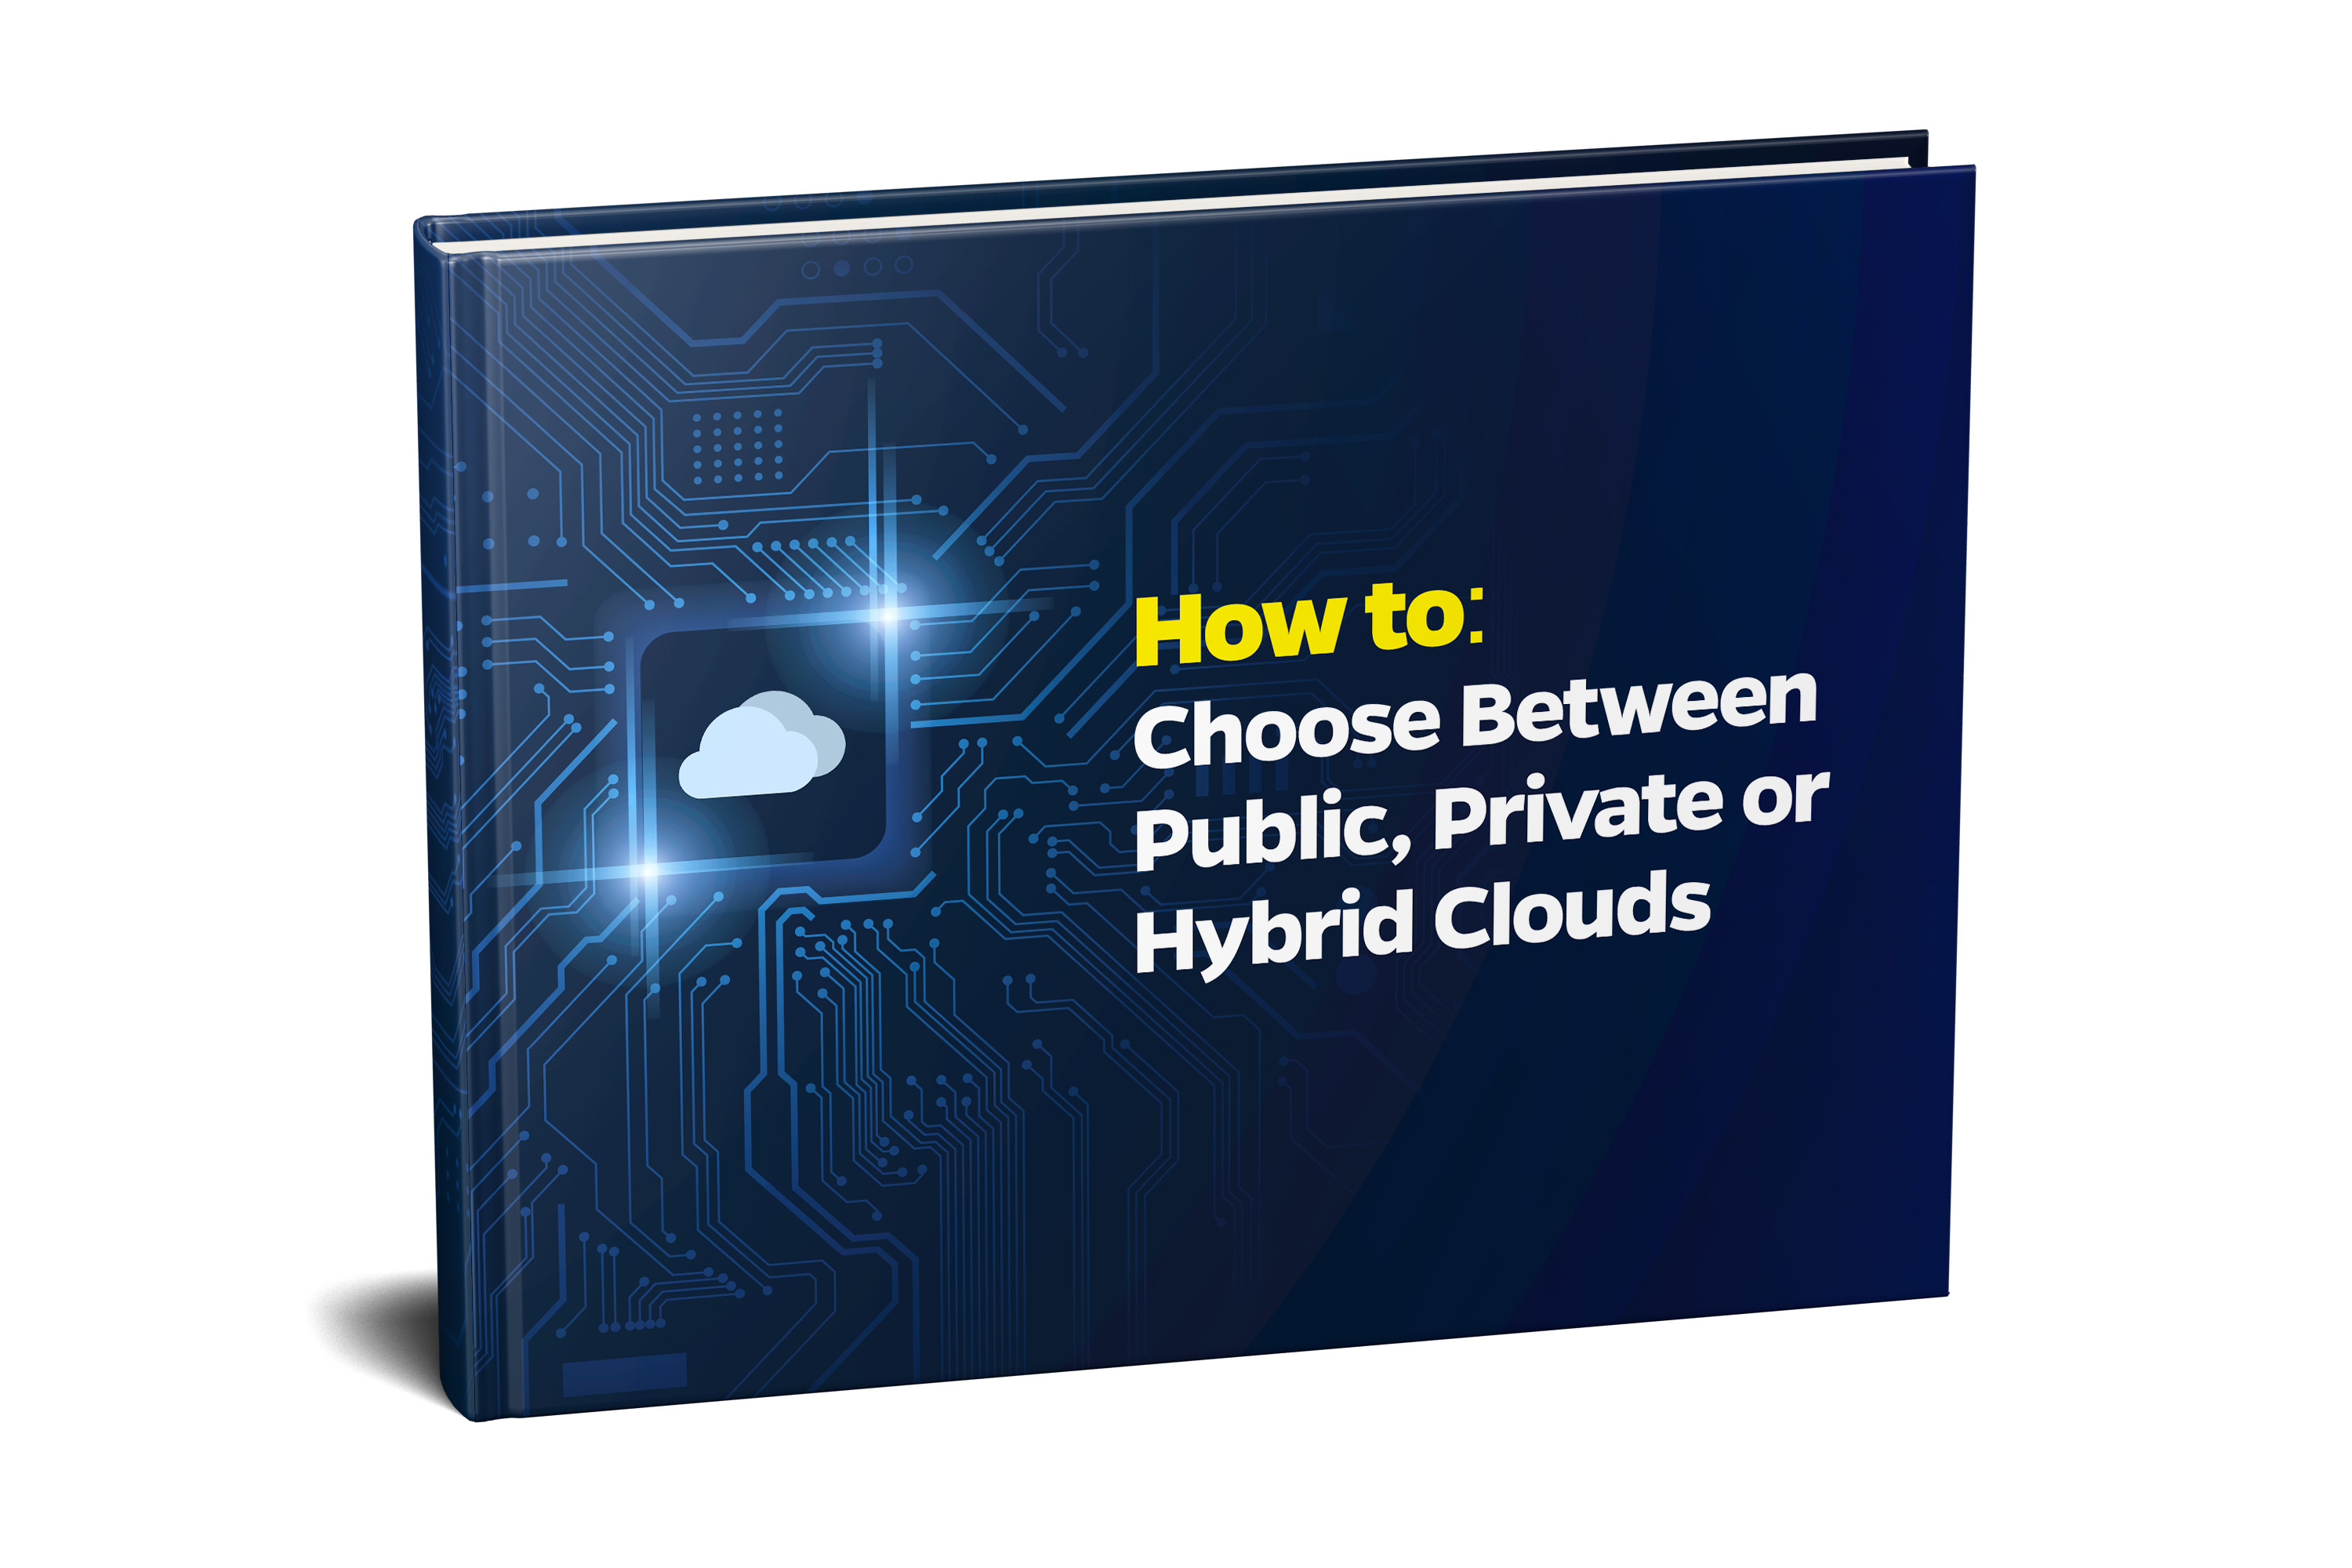 How to Choose Between Public, Private or Hybrid Clouds